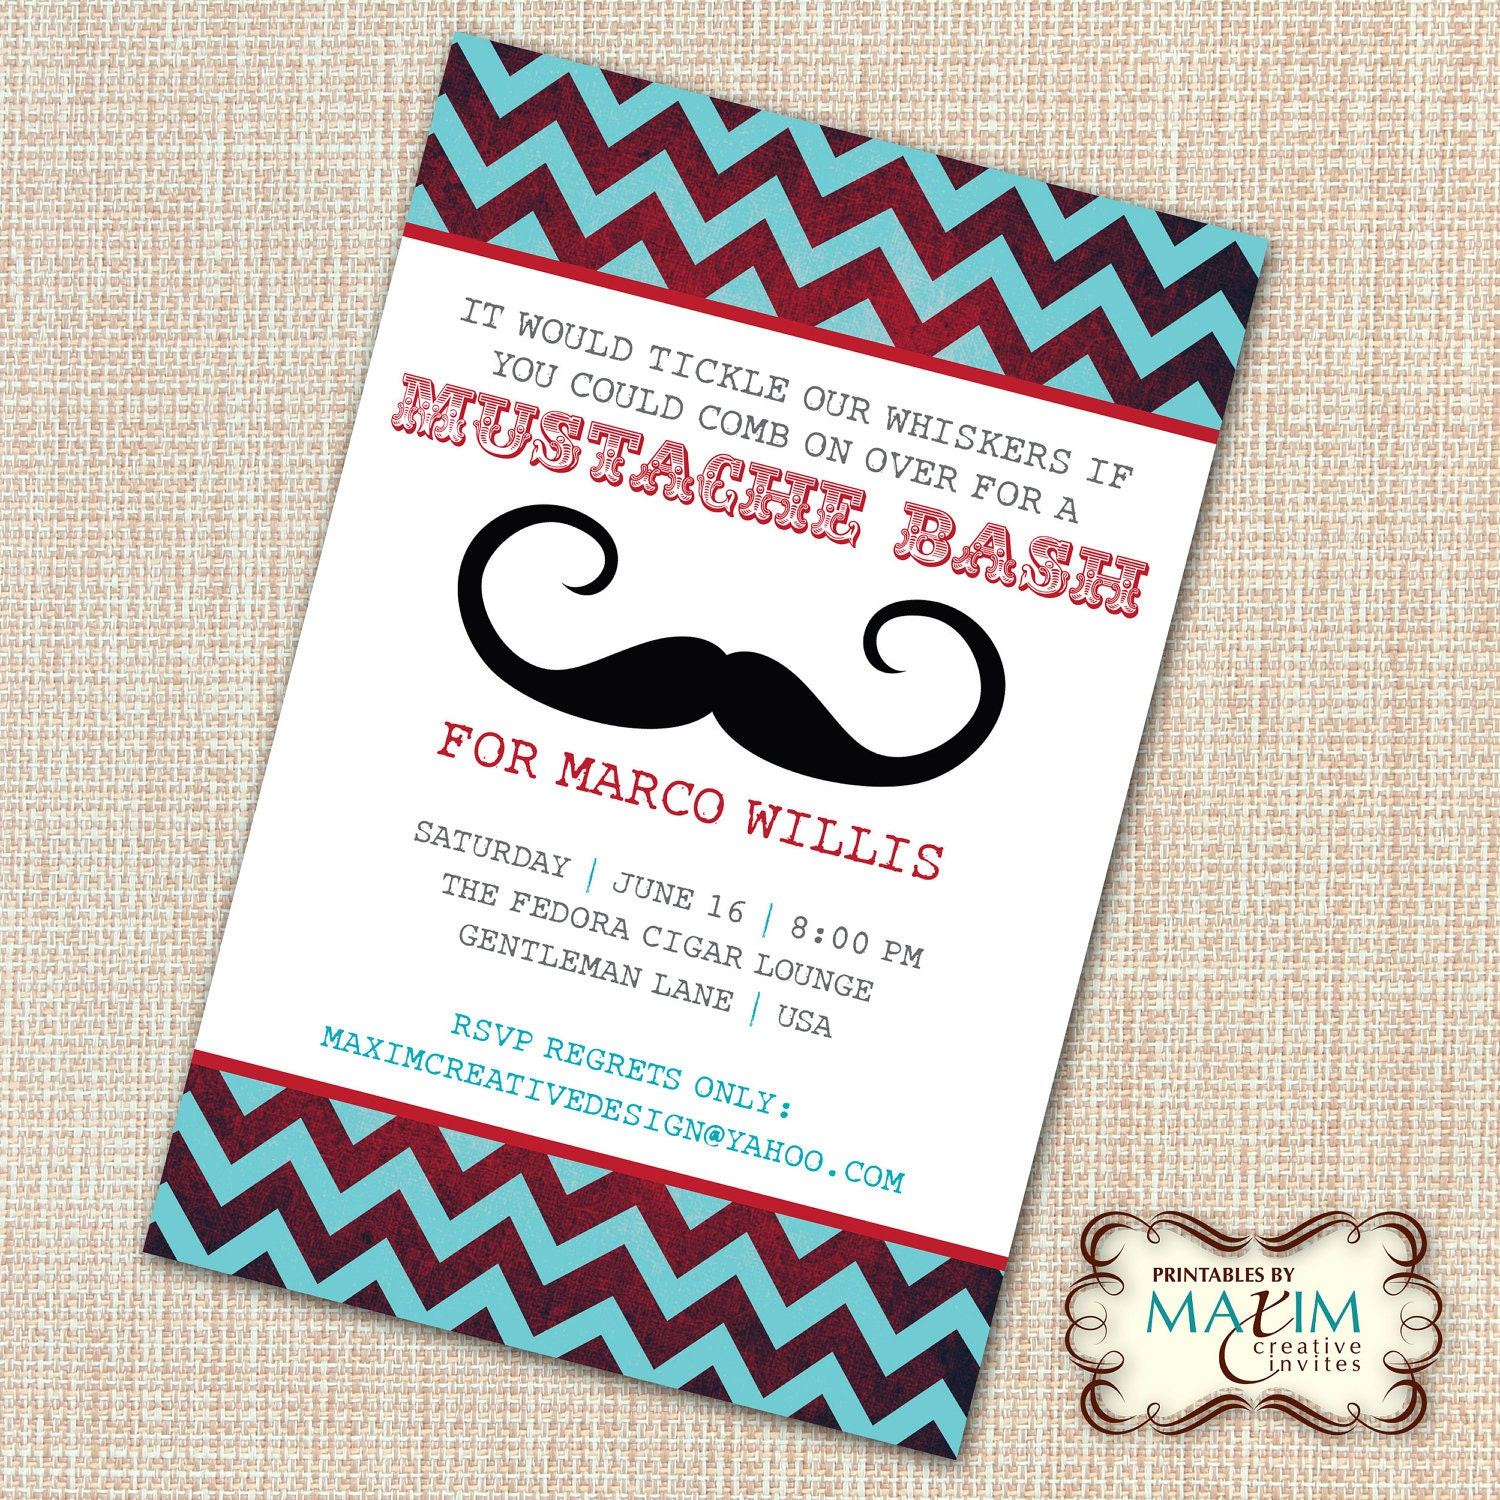 Mustache Party Invitations correctly perfect ideas for your invitation layout